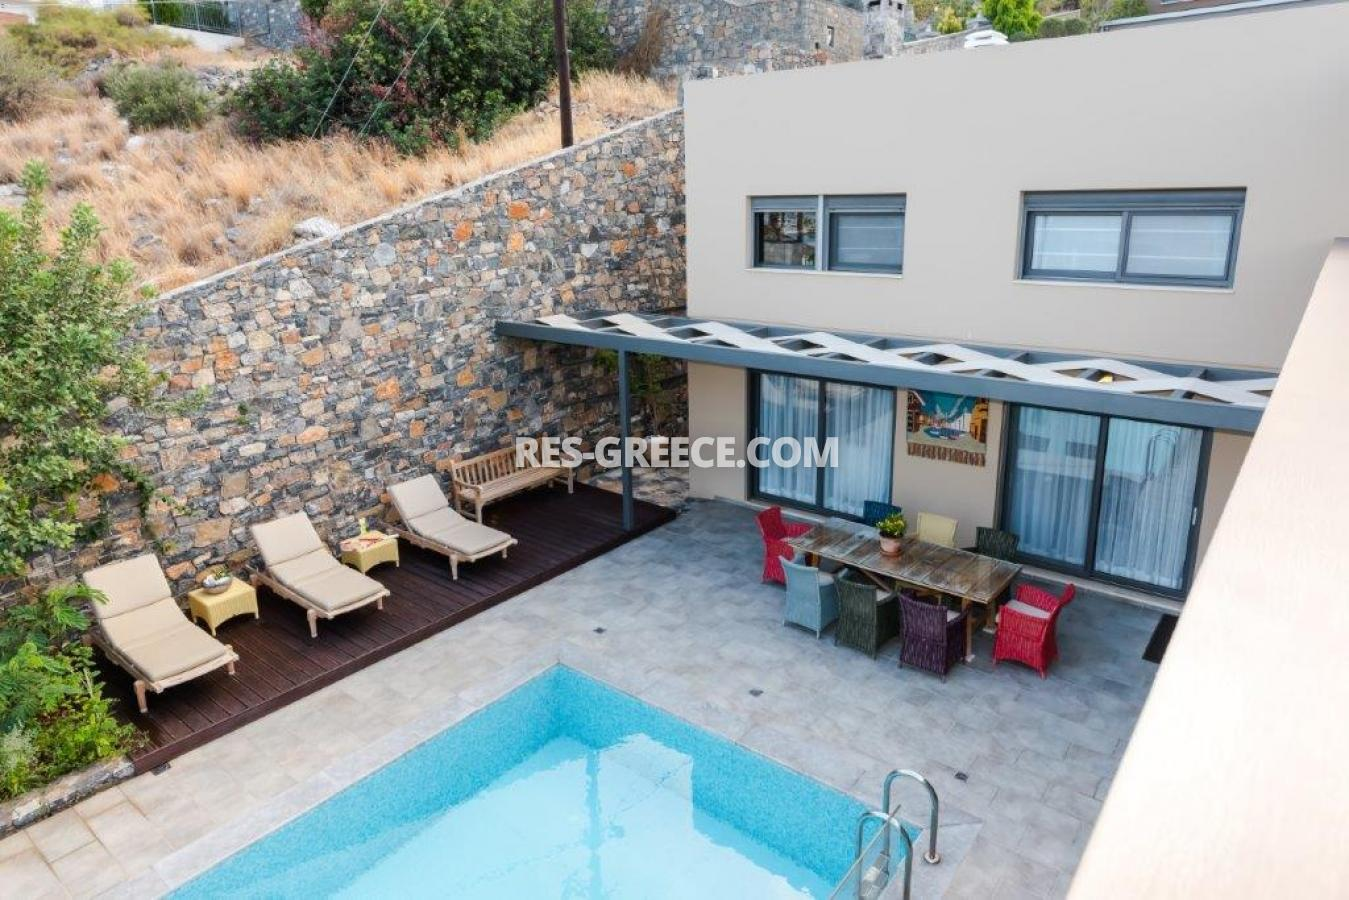 Aura Blue, Crete, Greece - villa with pool for sale in the best spot in Crete, in Elounda - Photo 3